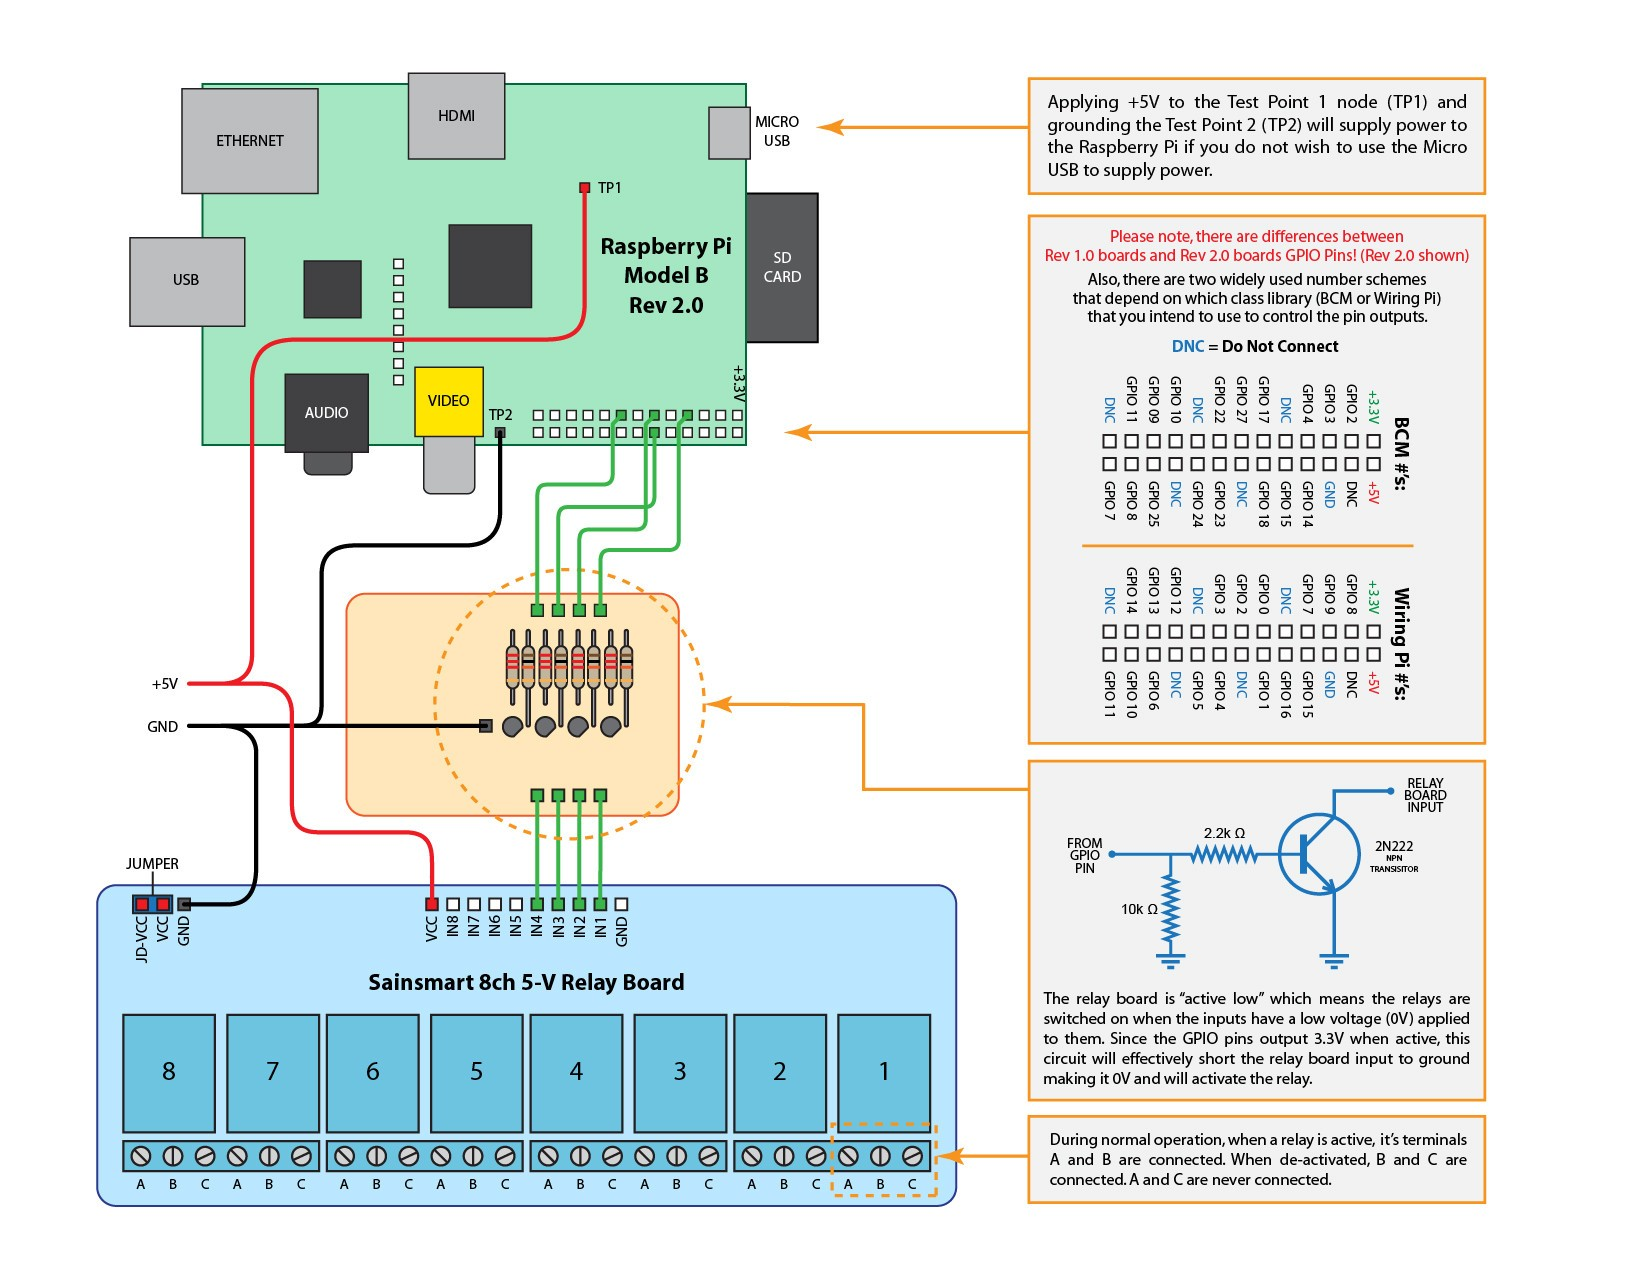 Jumper Cable Connection Diagram How to Wire A Raspberry Pi to A Sainsmart 5v Relay Board